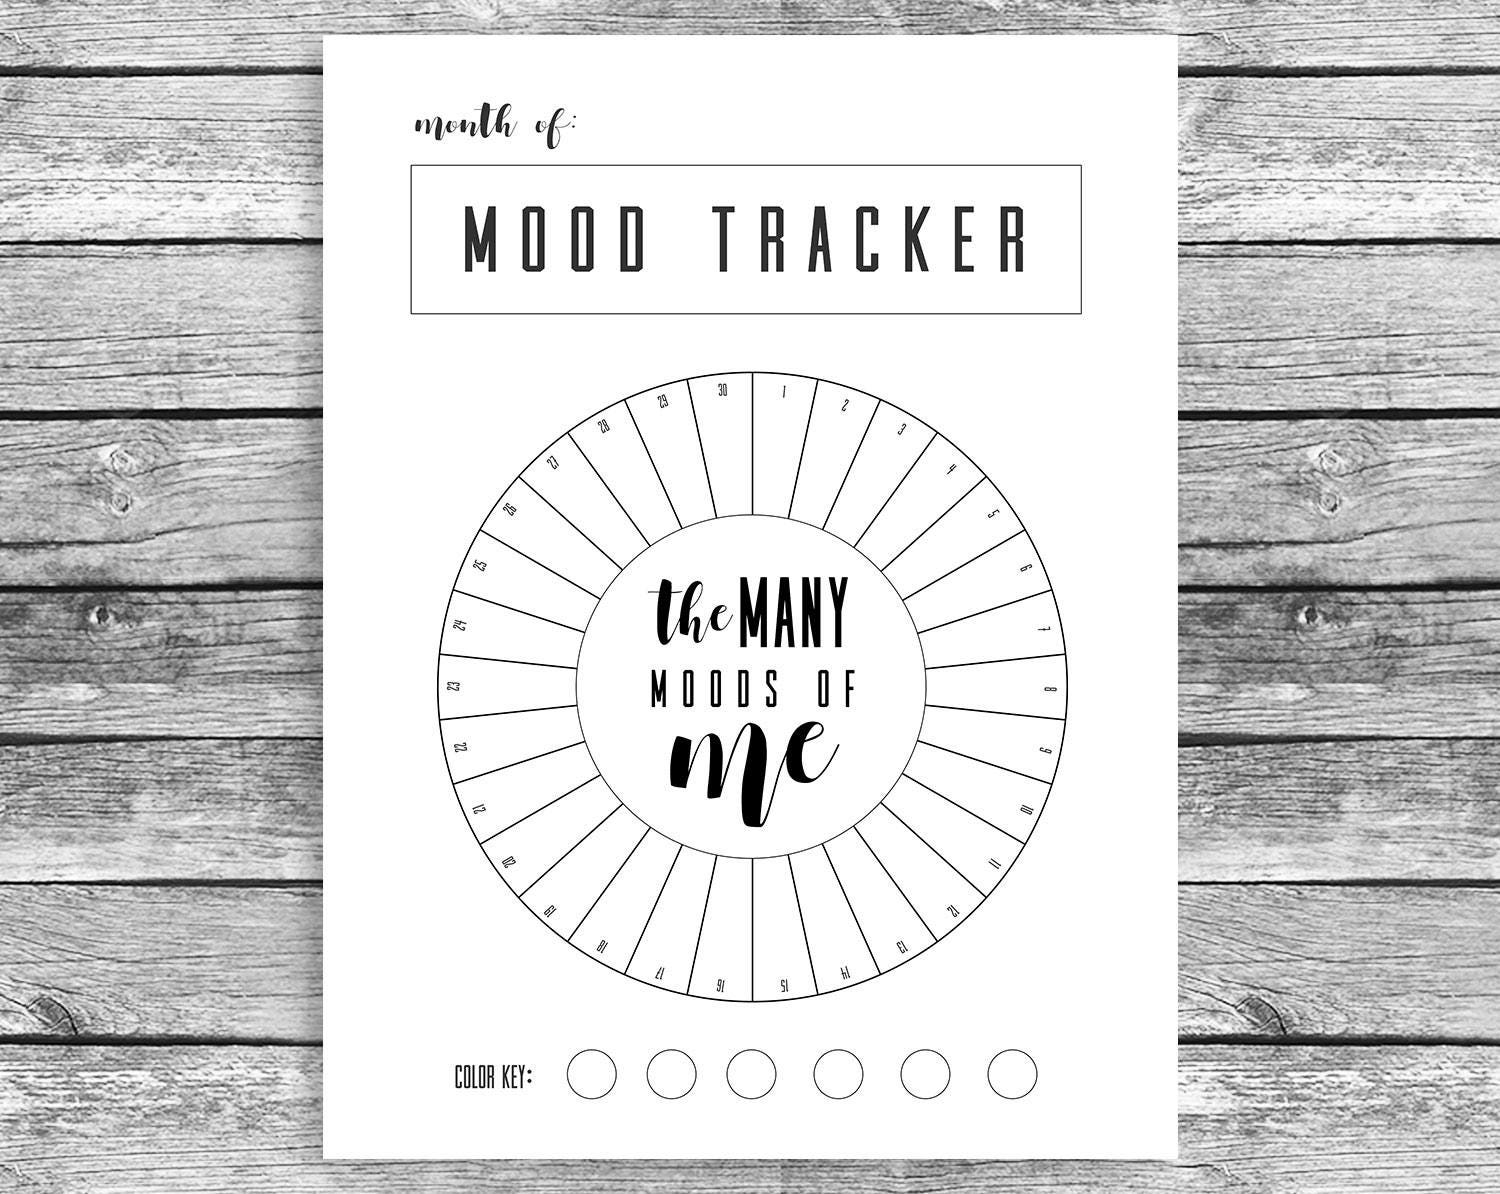 Clean image regarding printable mood tracker